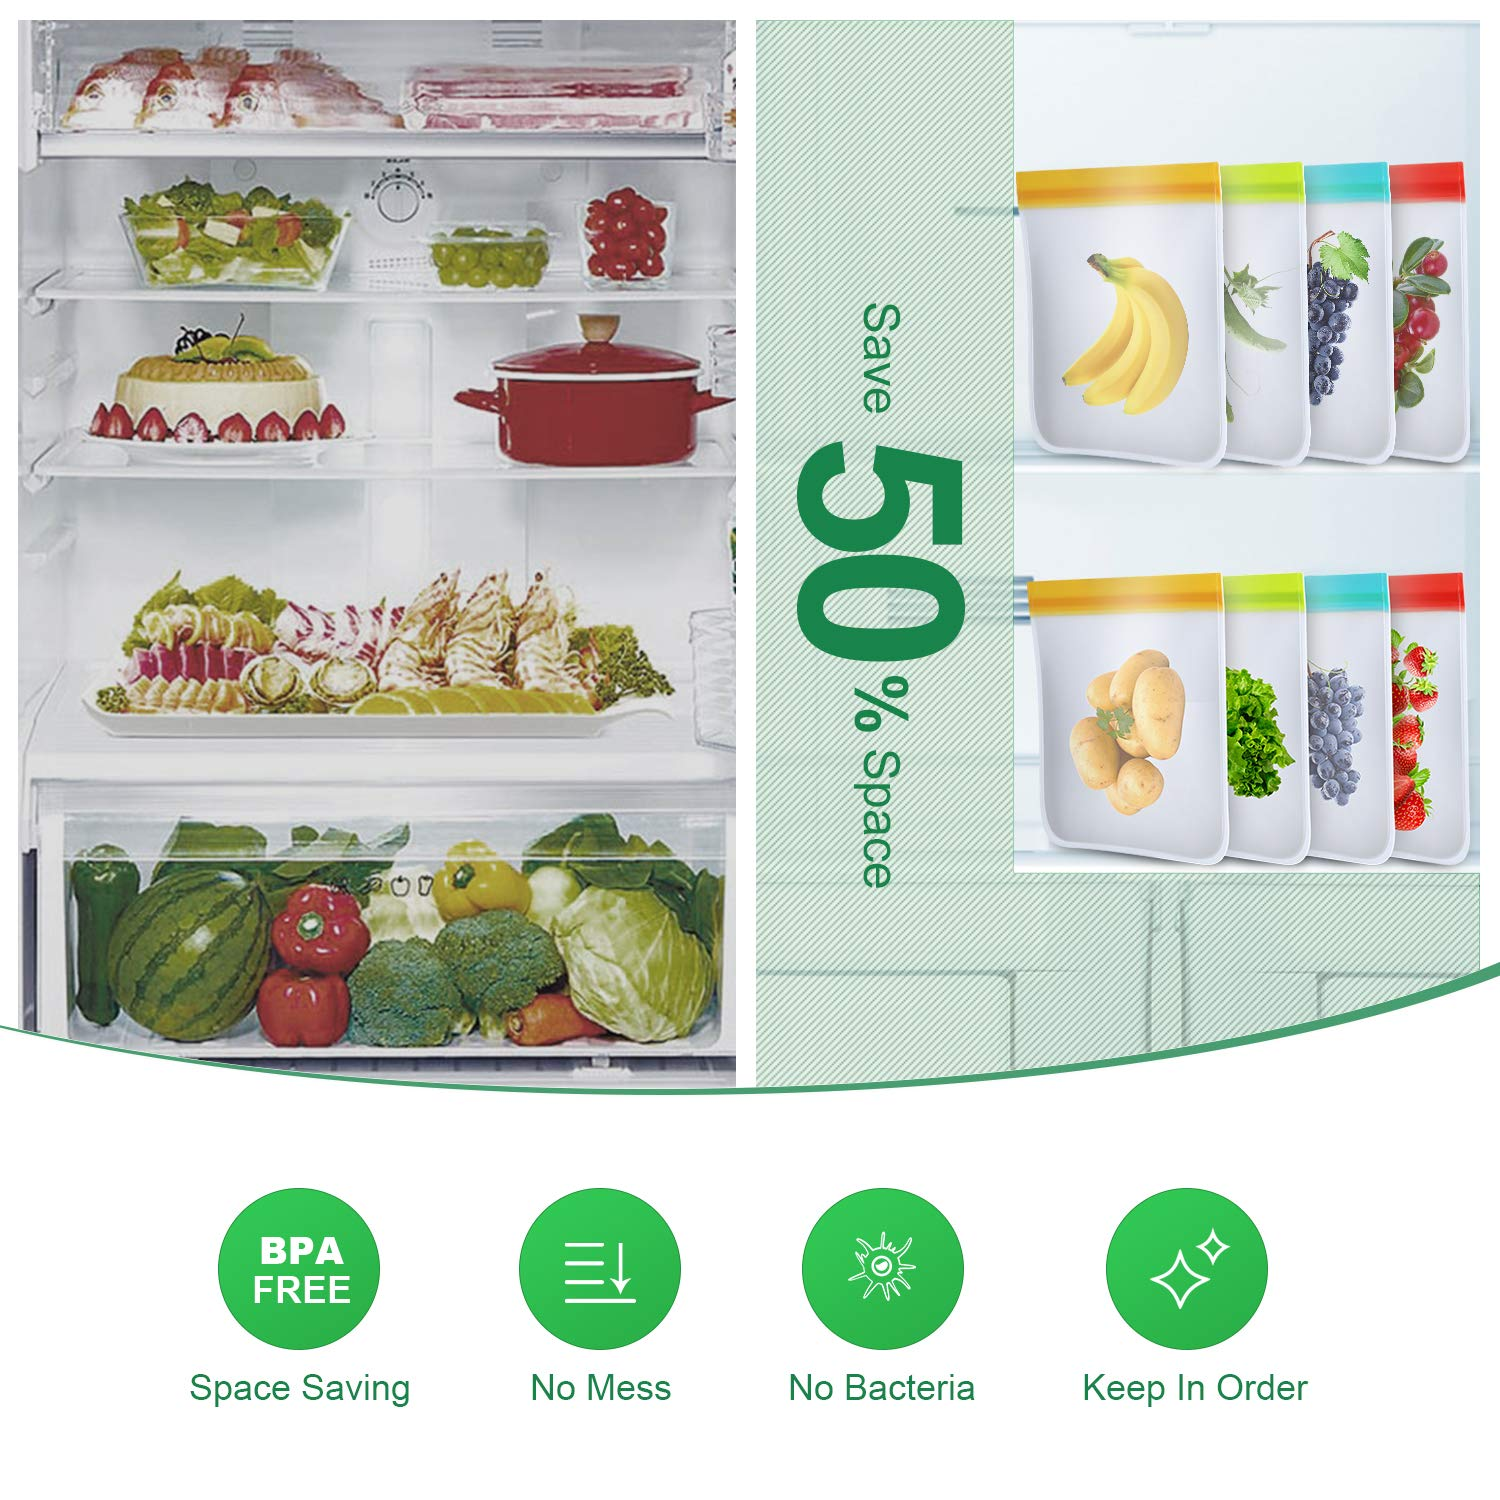 bedee Reusable Food Storage Bags - 8 Pack Extra Thick Ziplock Bags Leakproof Reusable Sandwich Bags - FDA Grade PEVA Snack & Lunch Bags for Kids Snacks, Fruit, Travel, Home Organization